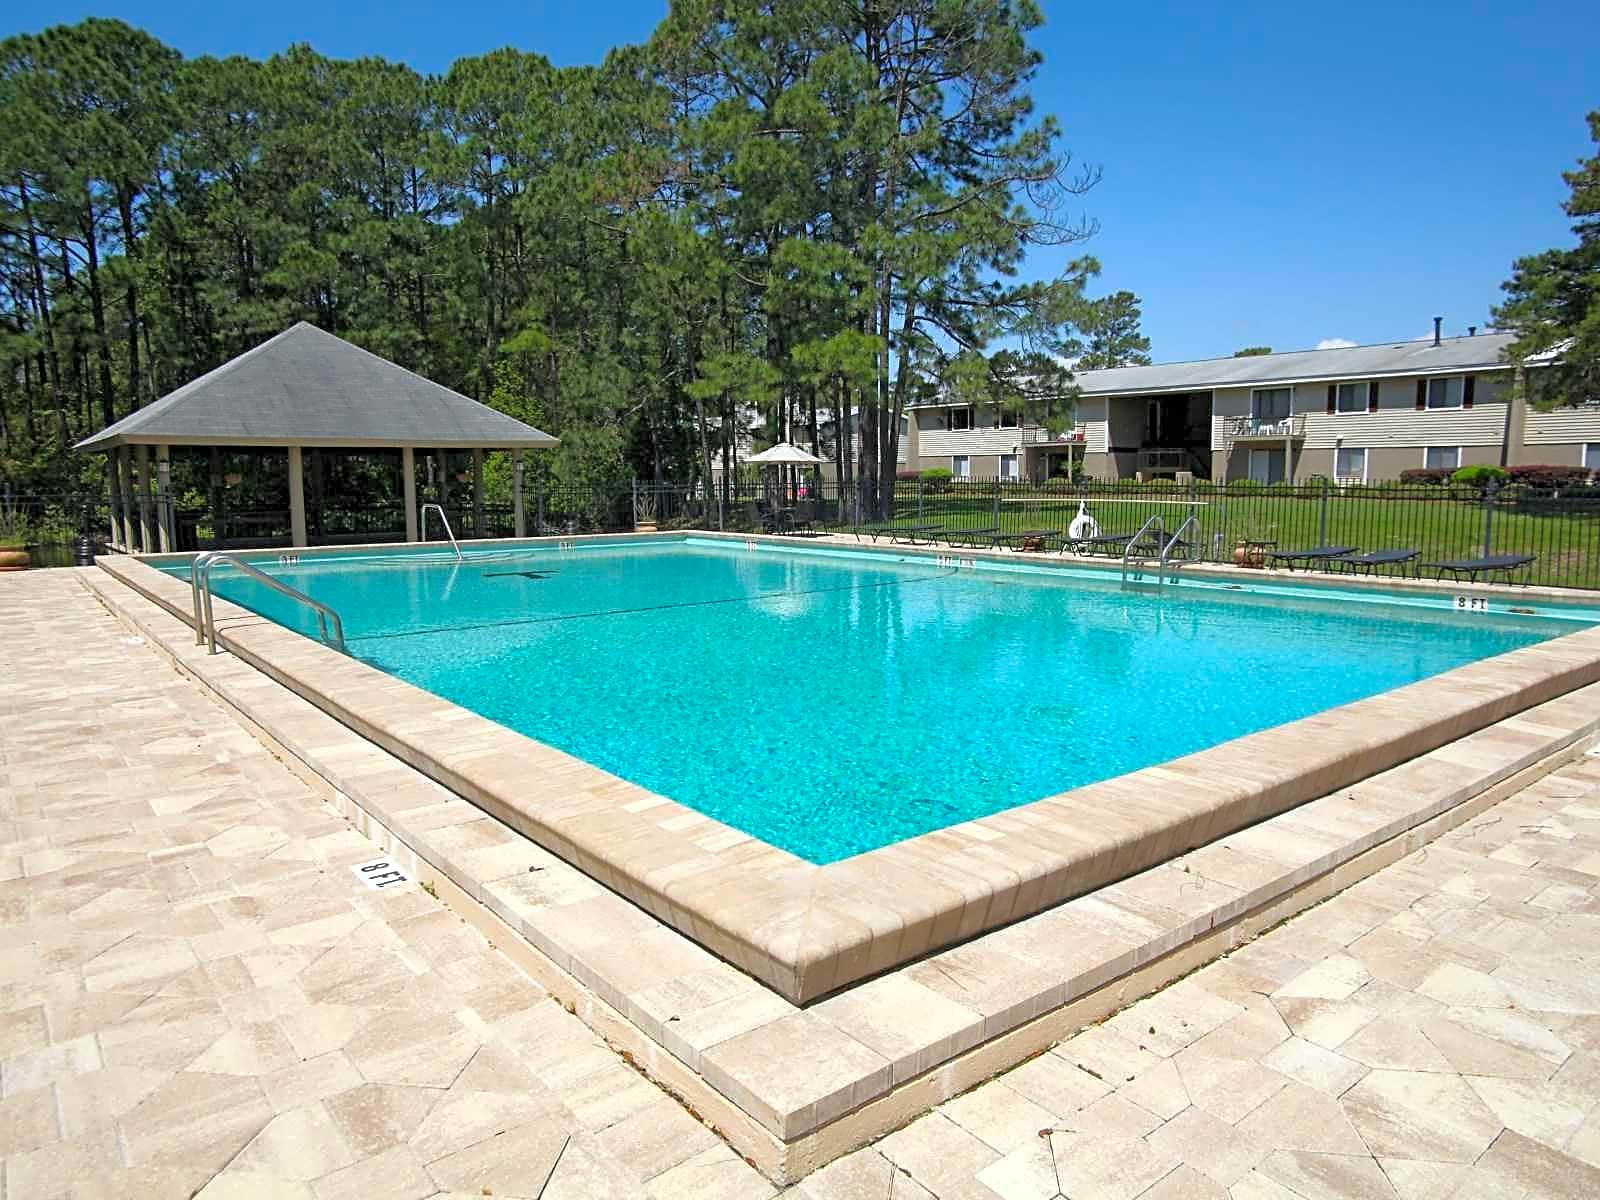 Photo: Panama City Apartment for Rent - $809.00 / month; 2 Bd & 2 Ba